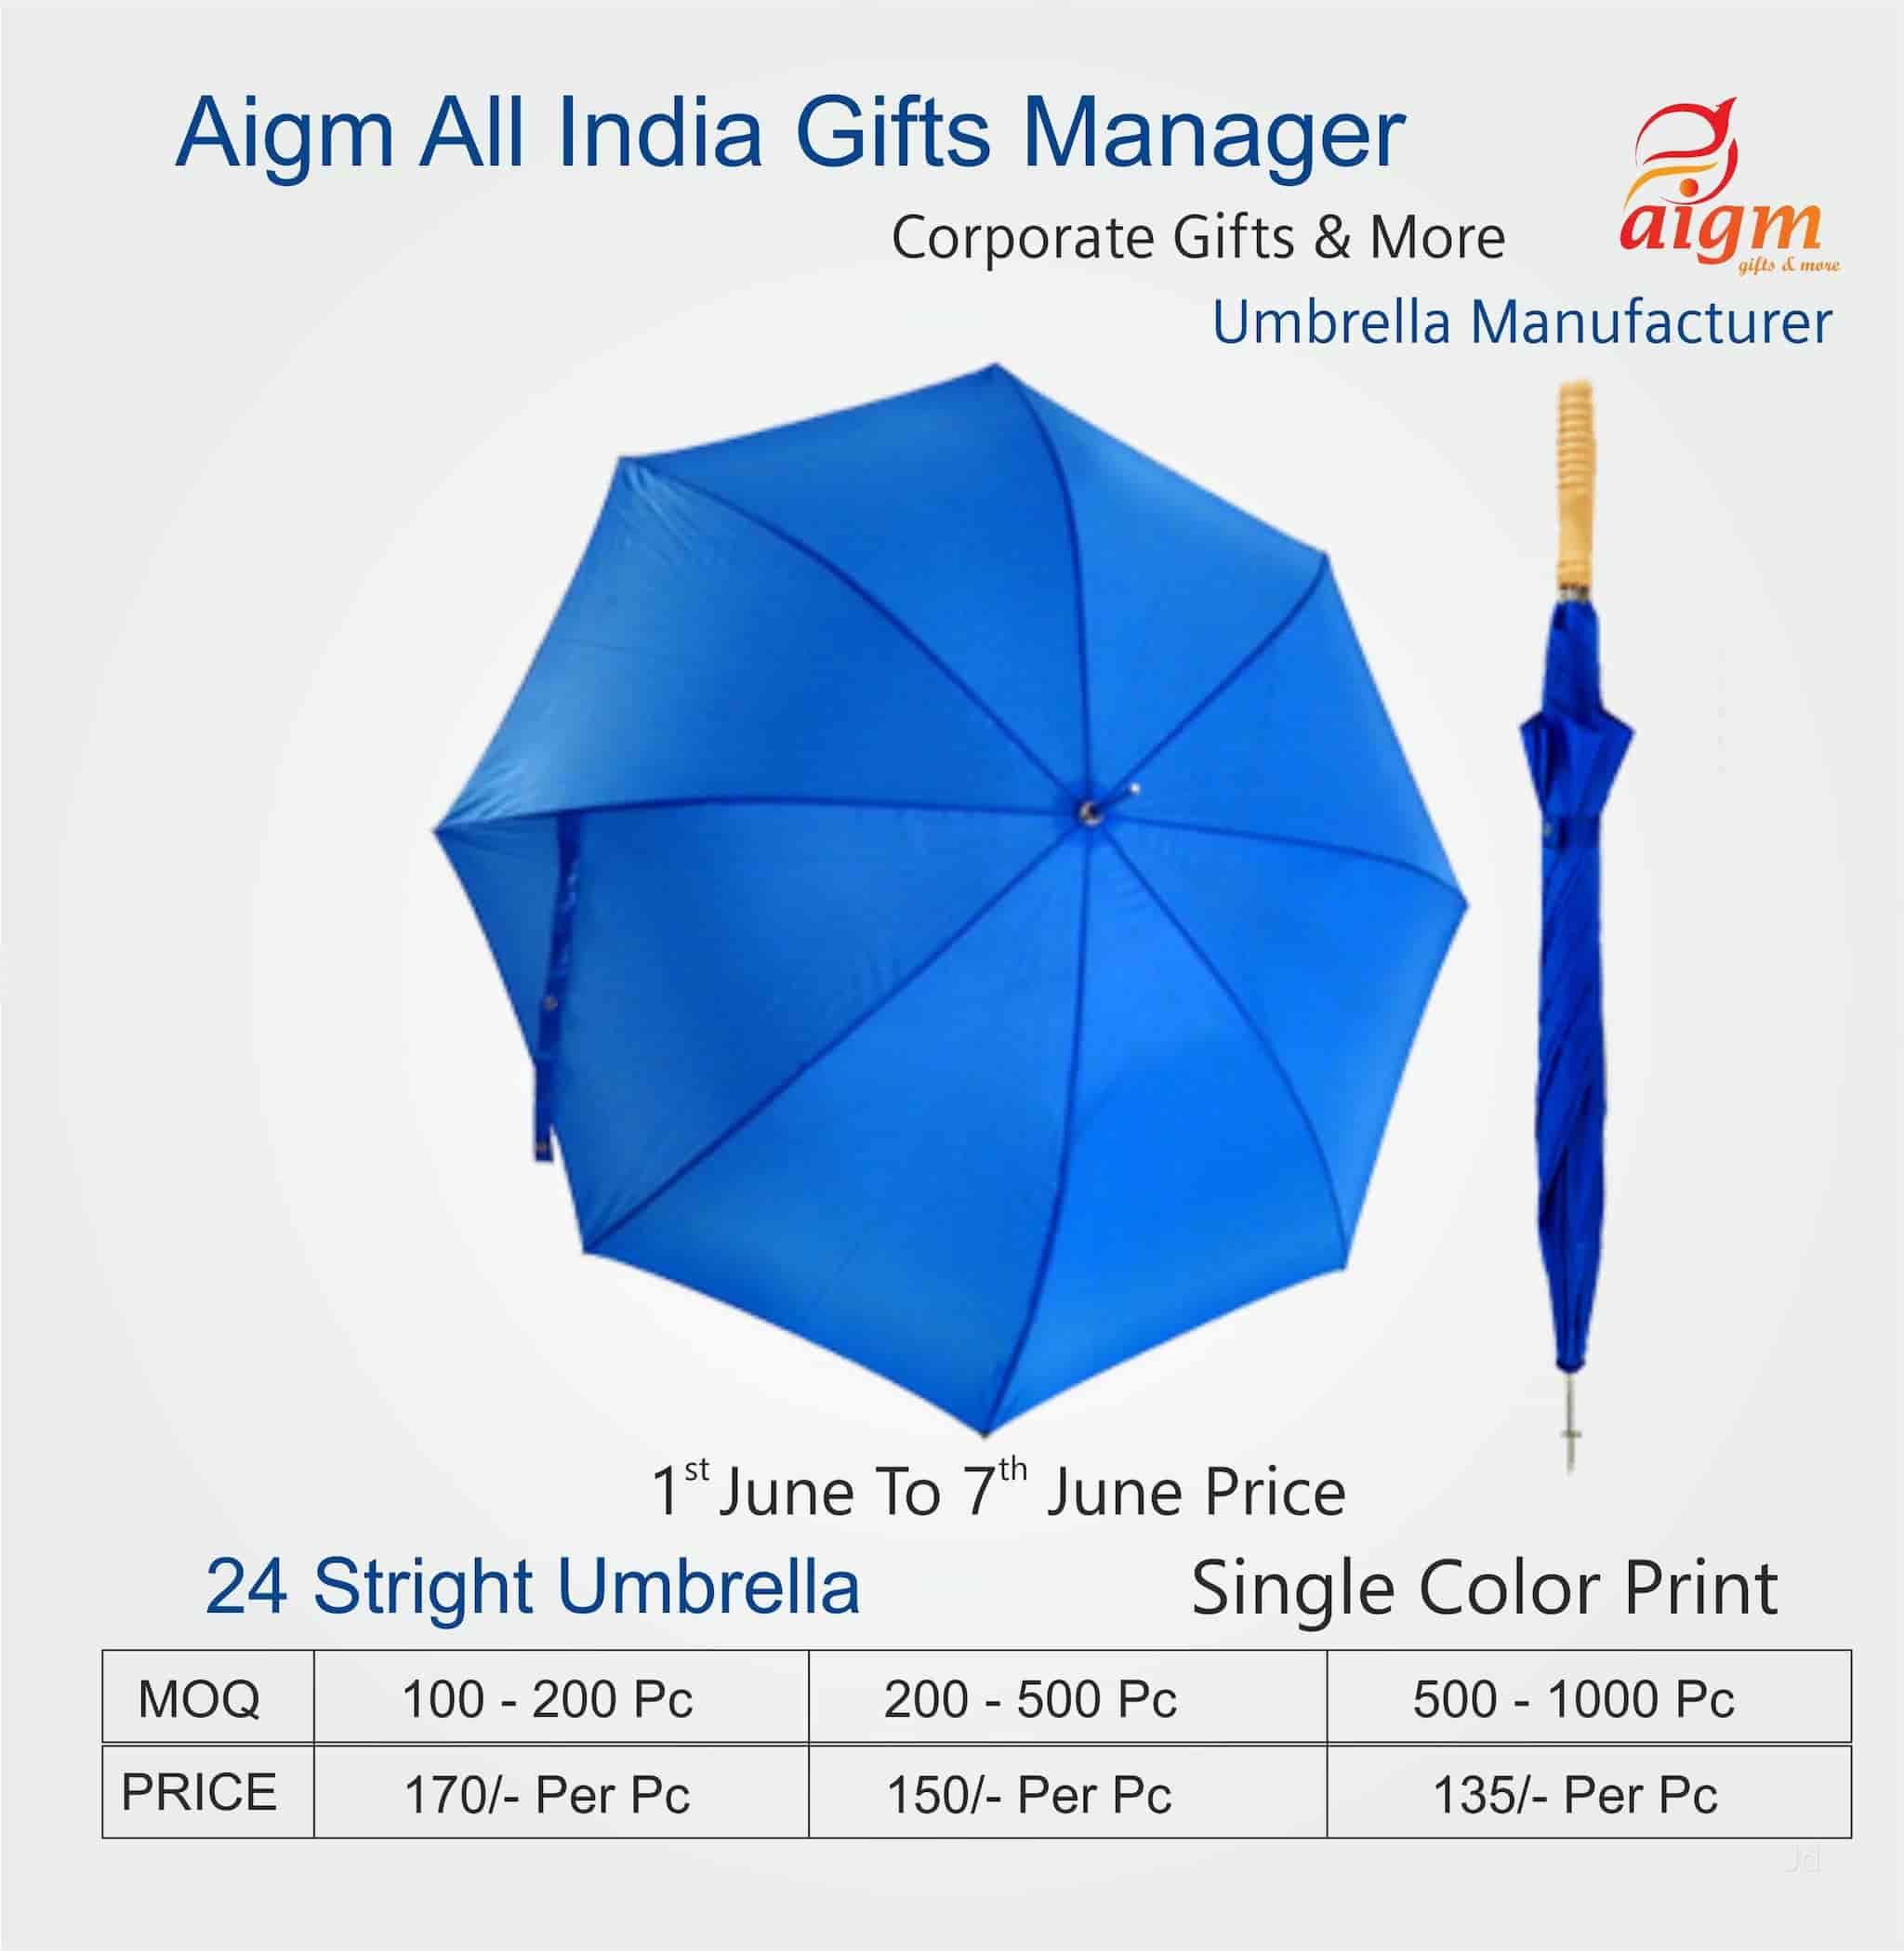 21d7056dcf73e All India Gifts Managers, Andheri East - Corporate Gift Manufacturers in  Mumbai - Justdial